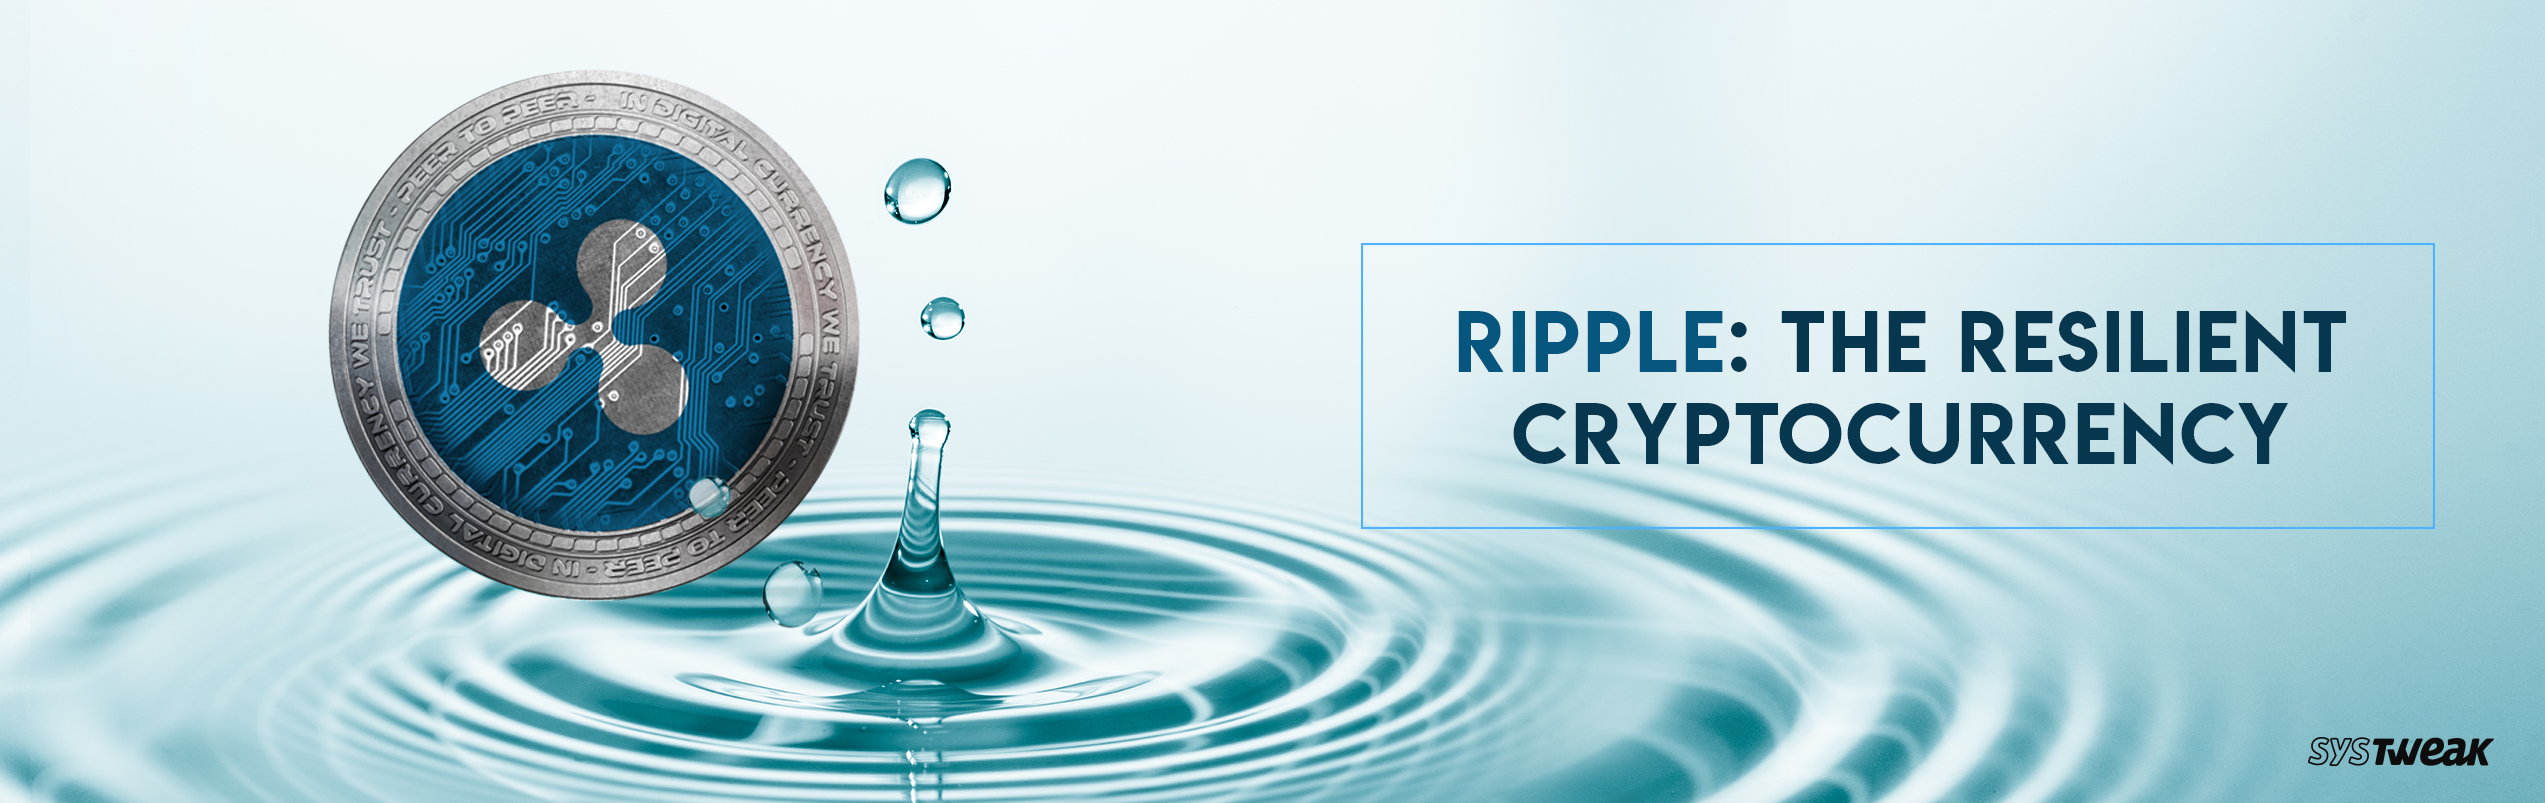 Ripple: Surging Ahead Of Bitcoin!